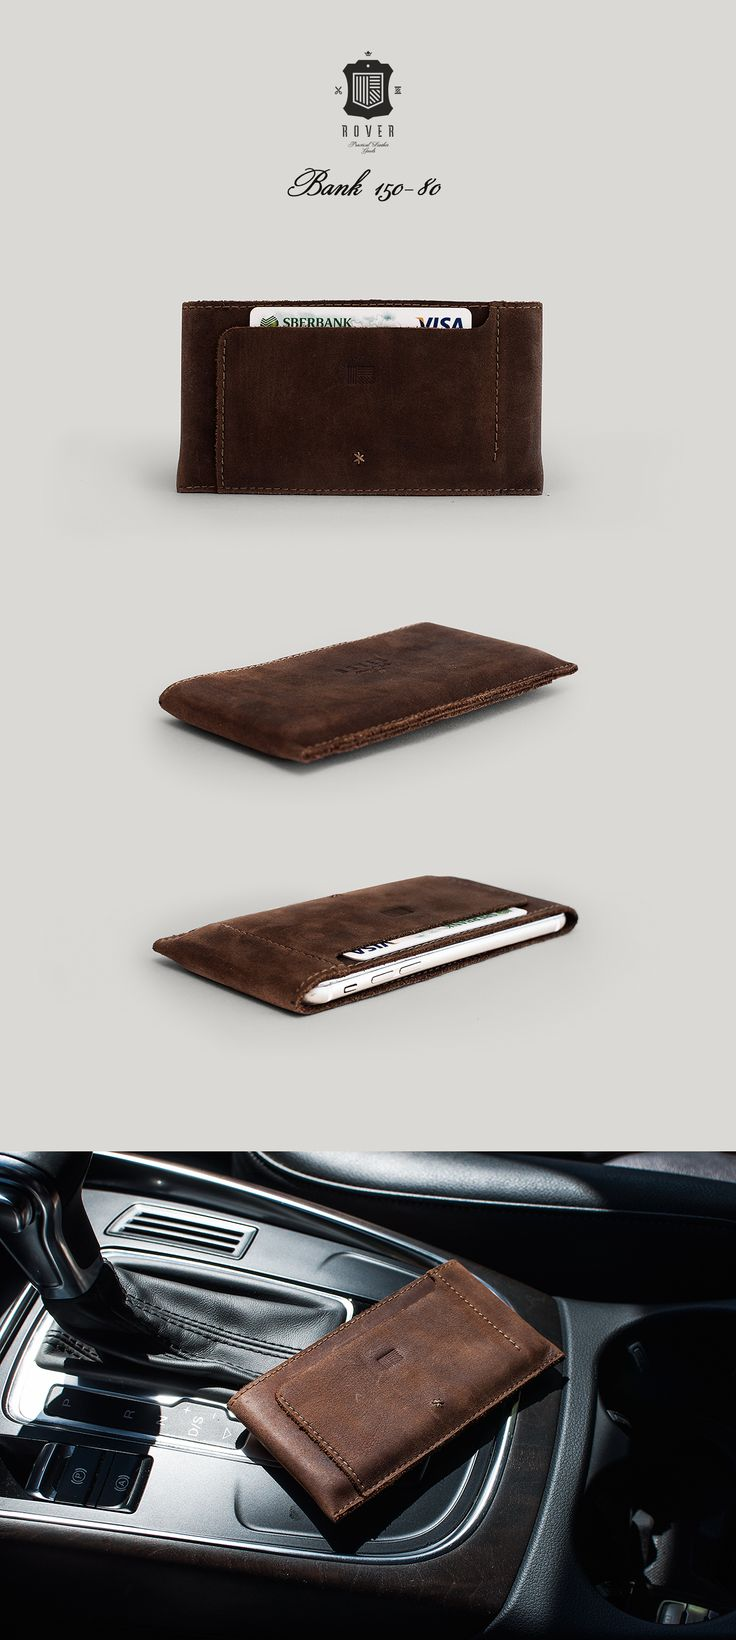 ROVER Bank 150-80 iPhone 6, 6S Leather Cover